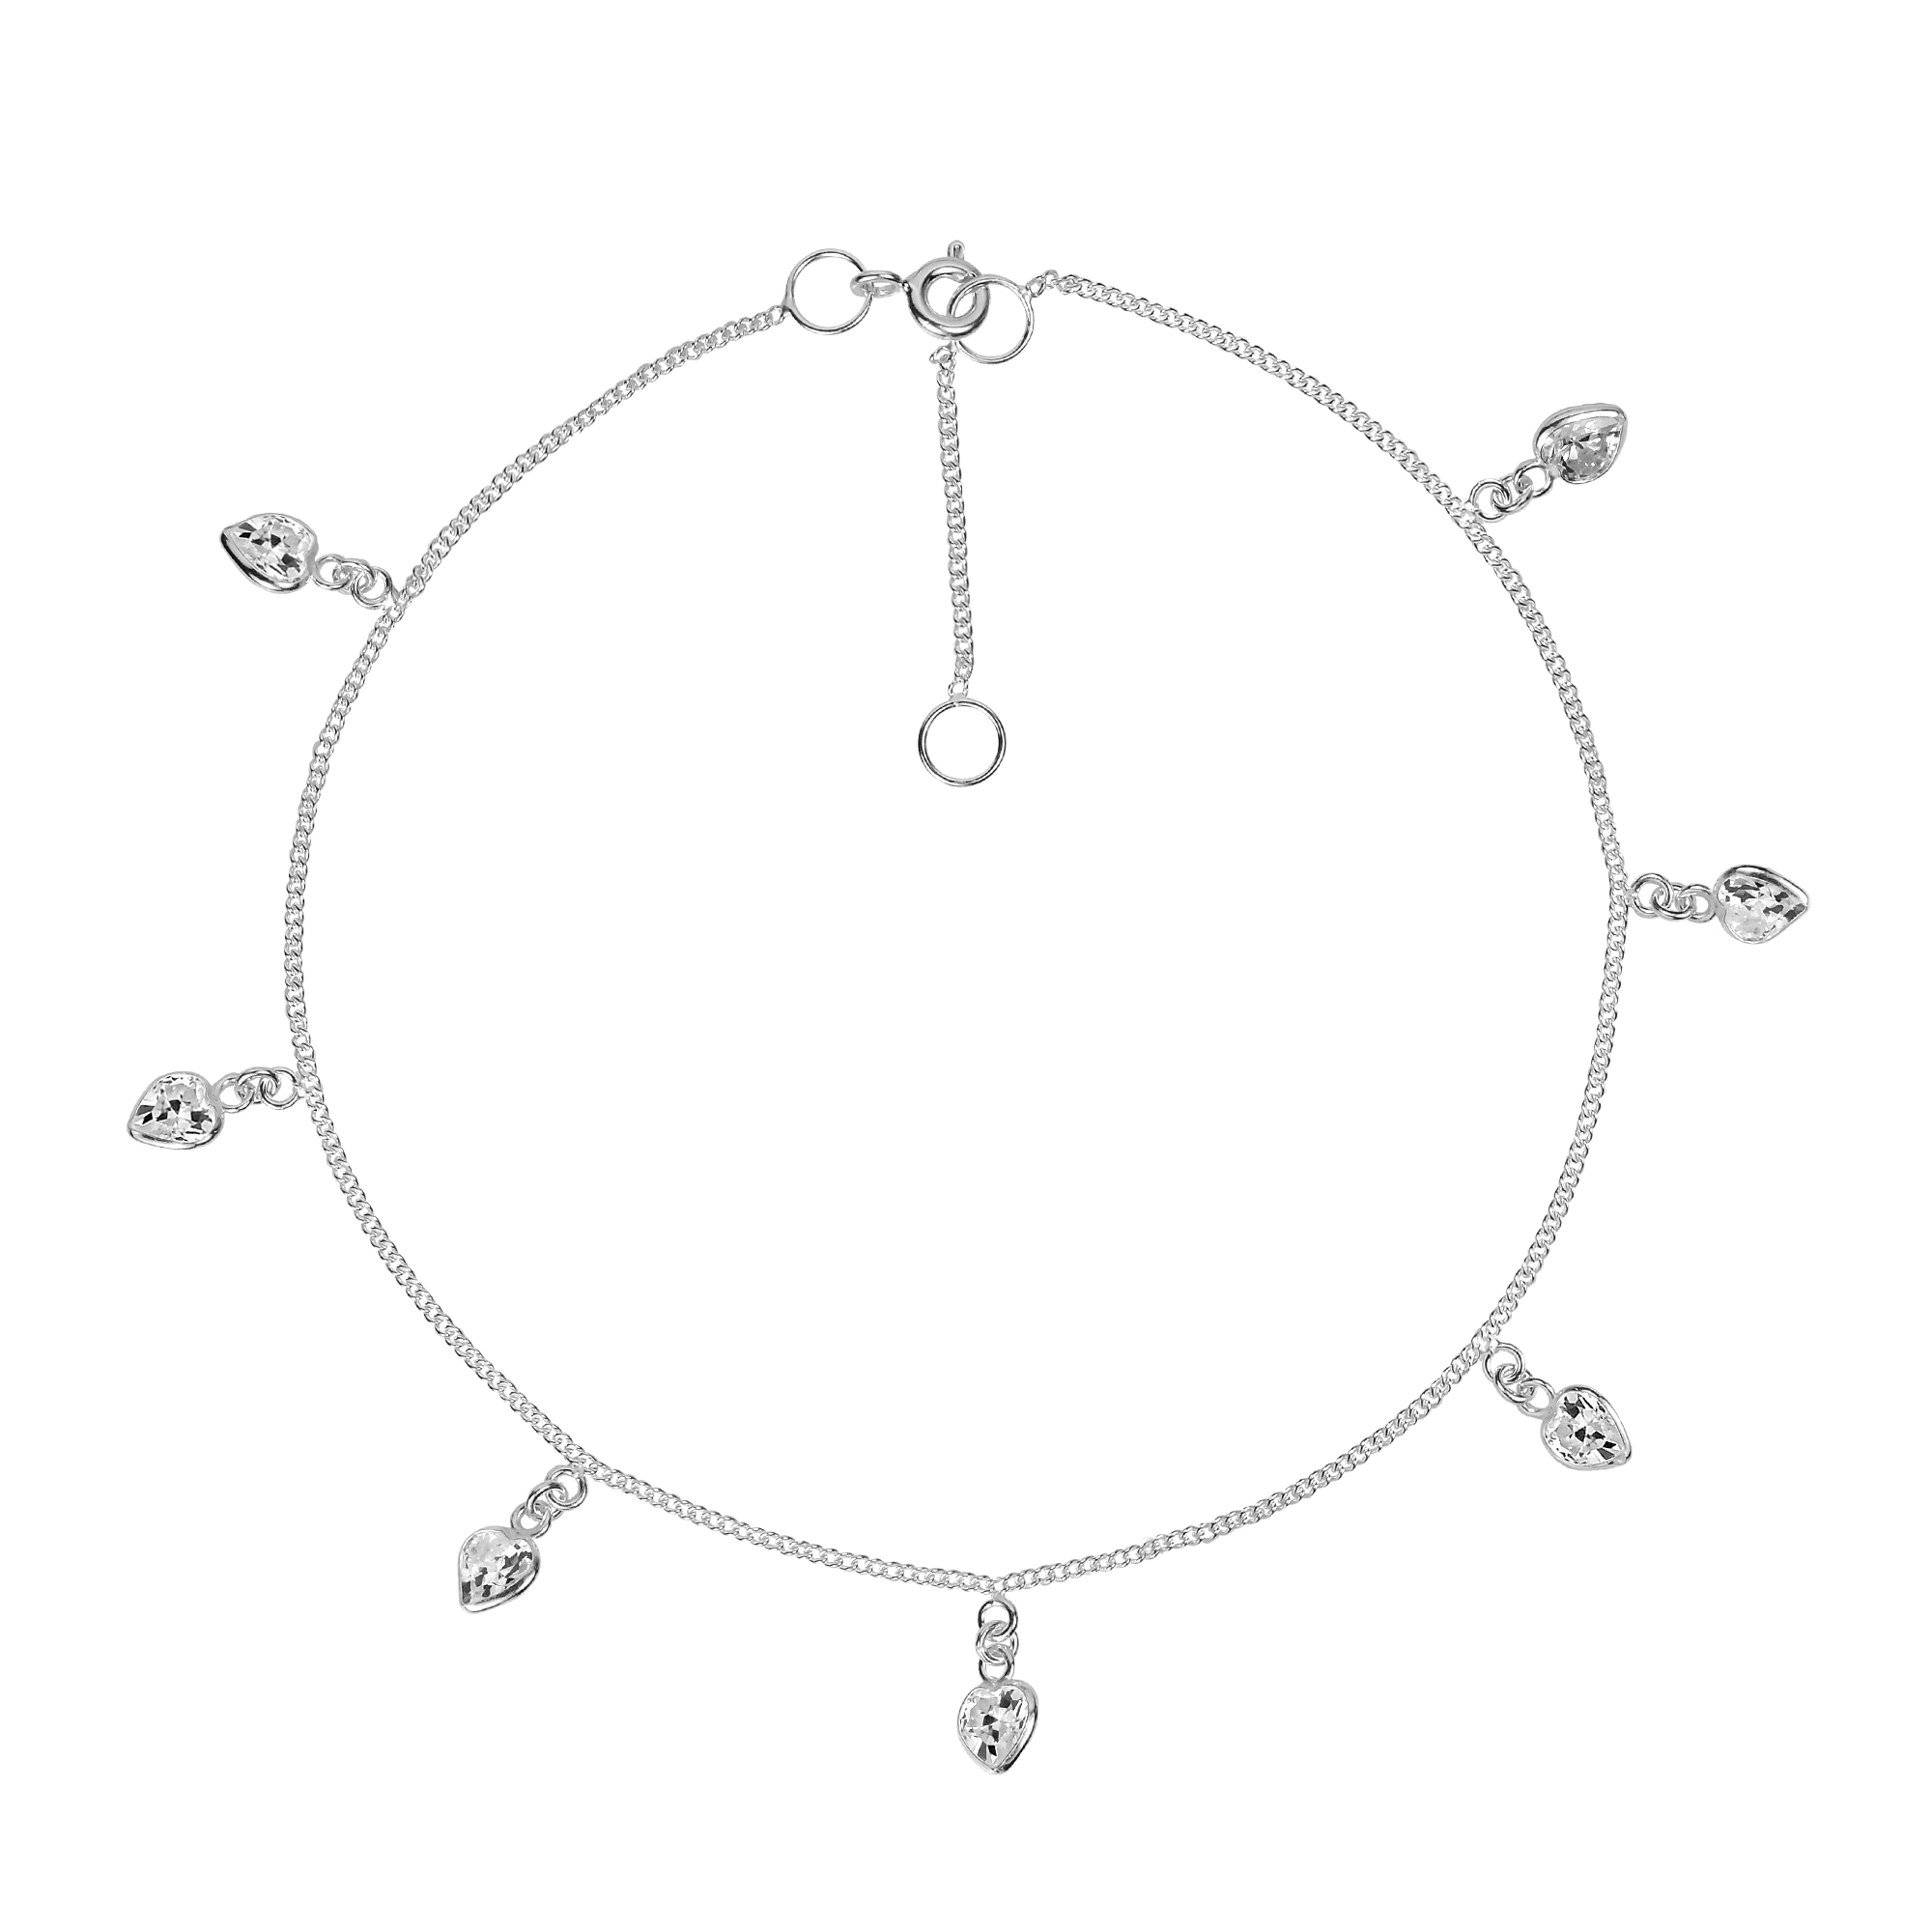 sterling statement cute products anklet ca silver thailand from cubic cz accents a link make with anklets details this wt white round features zirconia beautiful crafted aeravida